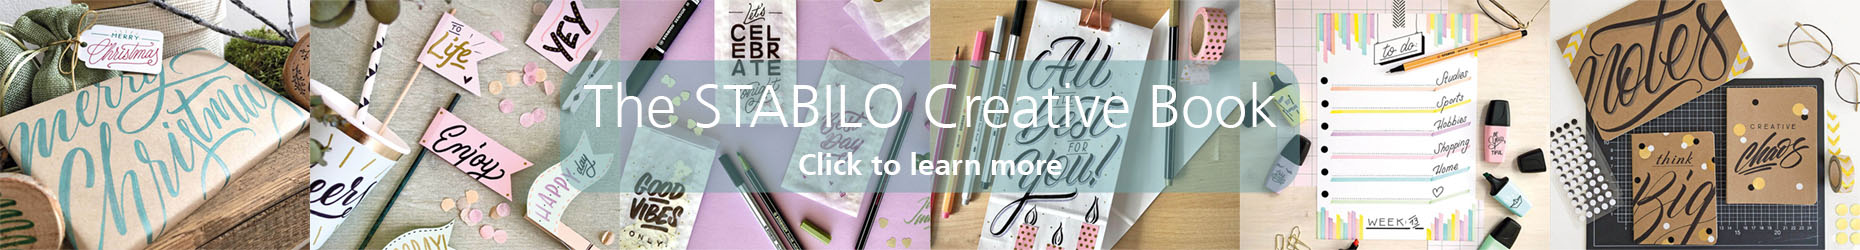 Link to STABILO Creative Book